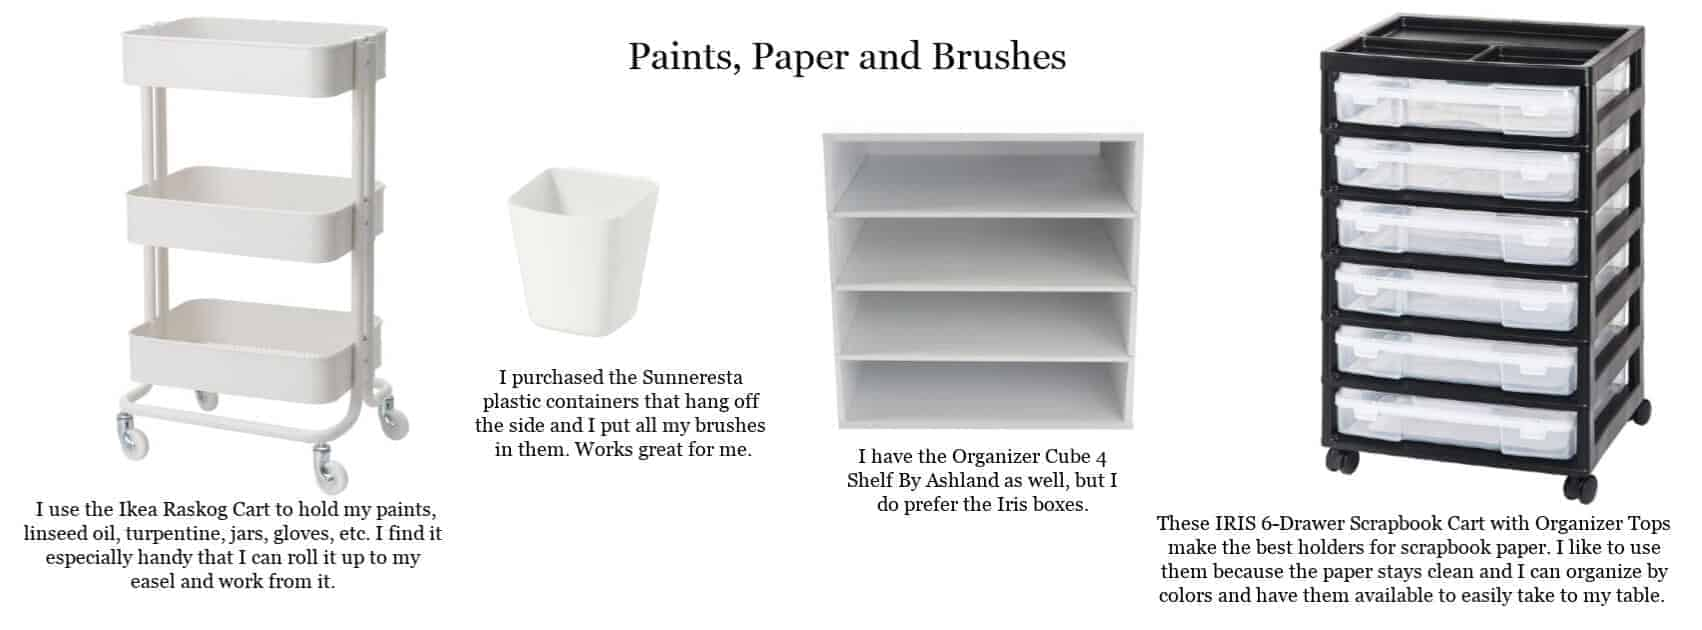 Paints, Paper and Brushes  Organization